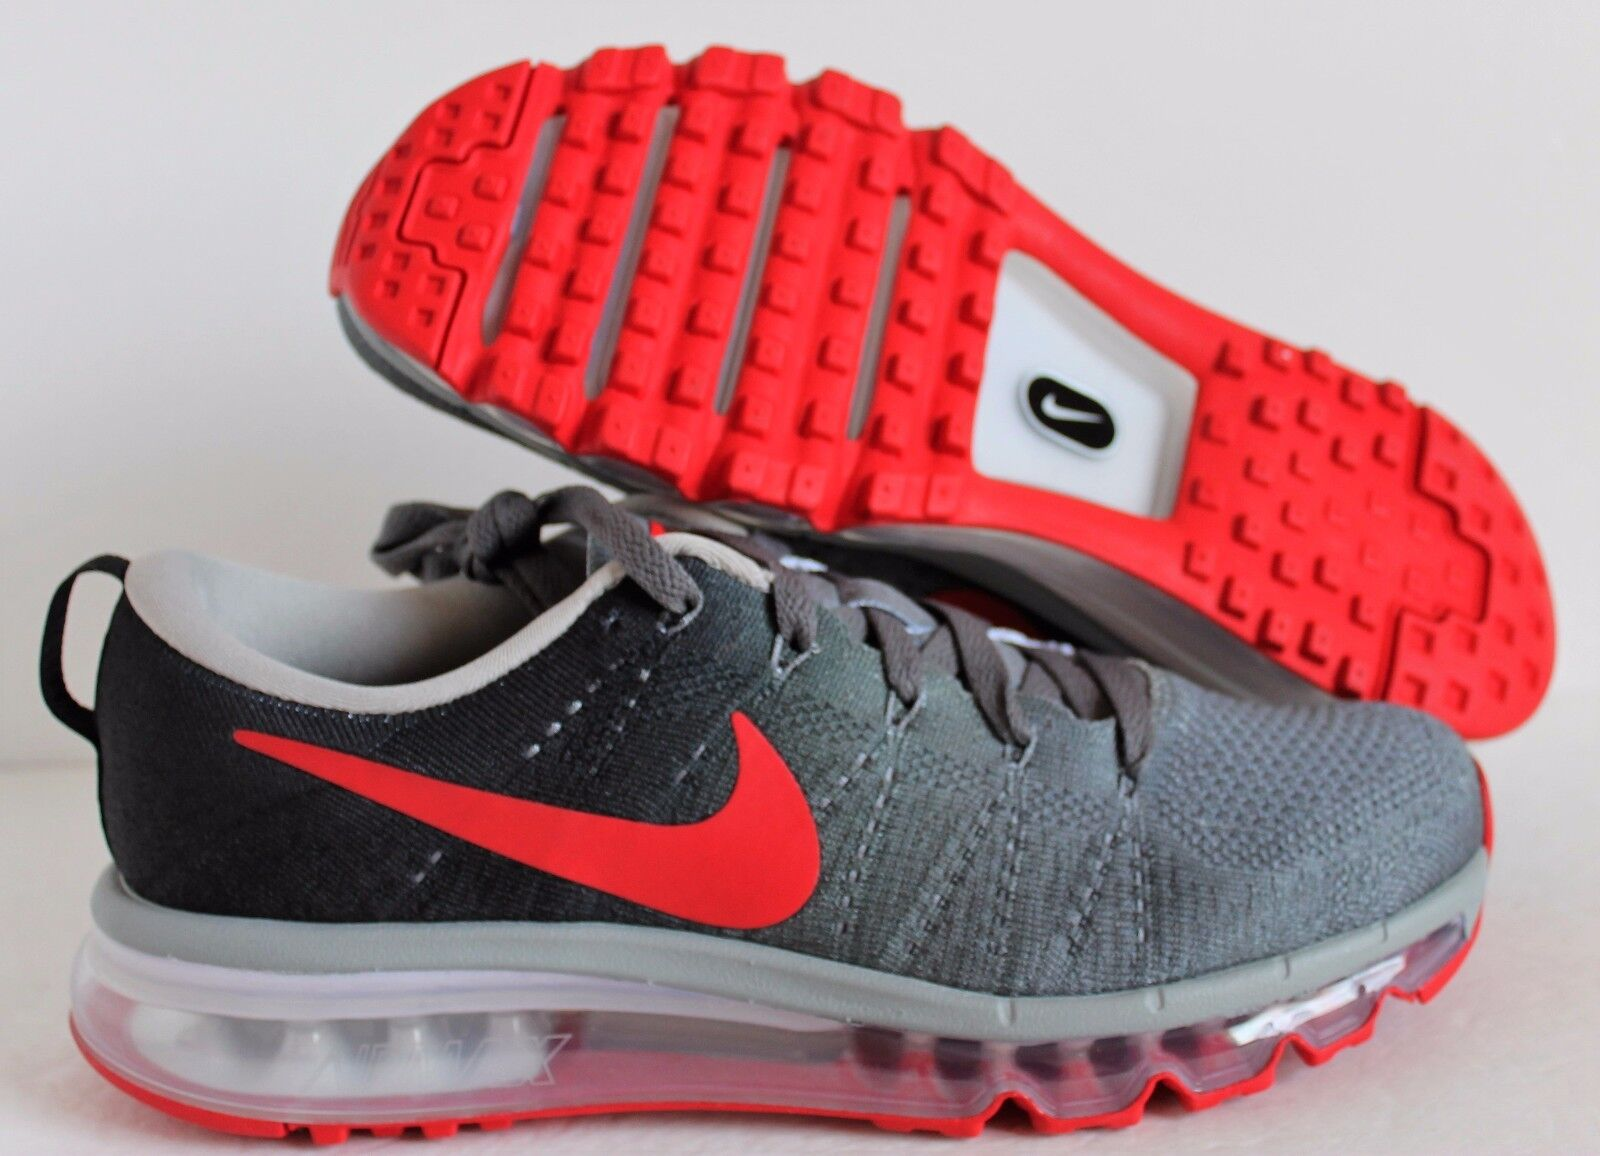 Nike Men's Air Max Flyknit ID Charcoal-Black-Red  sz 7.5 [845615-992]